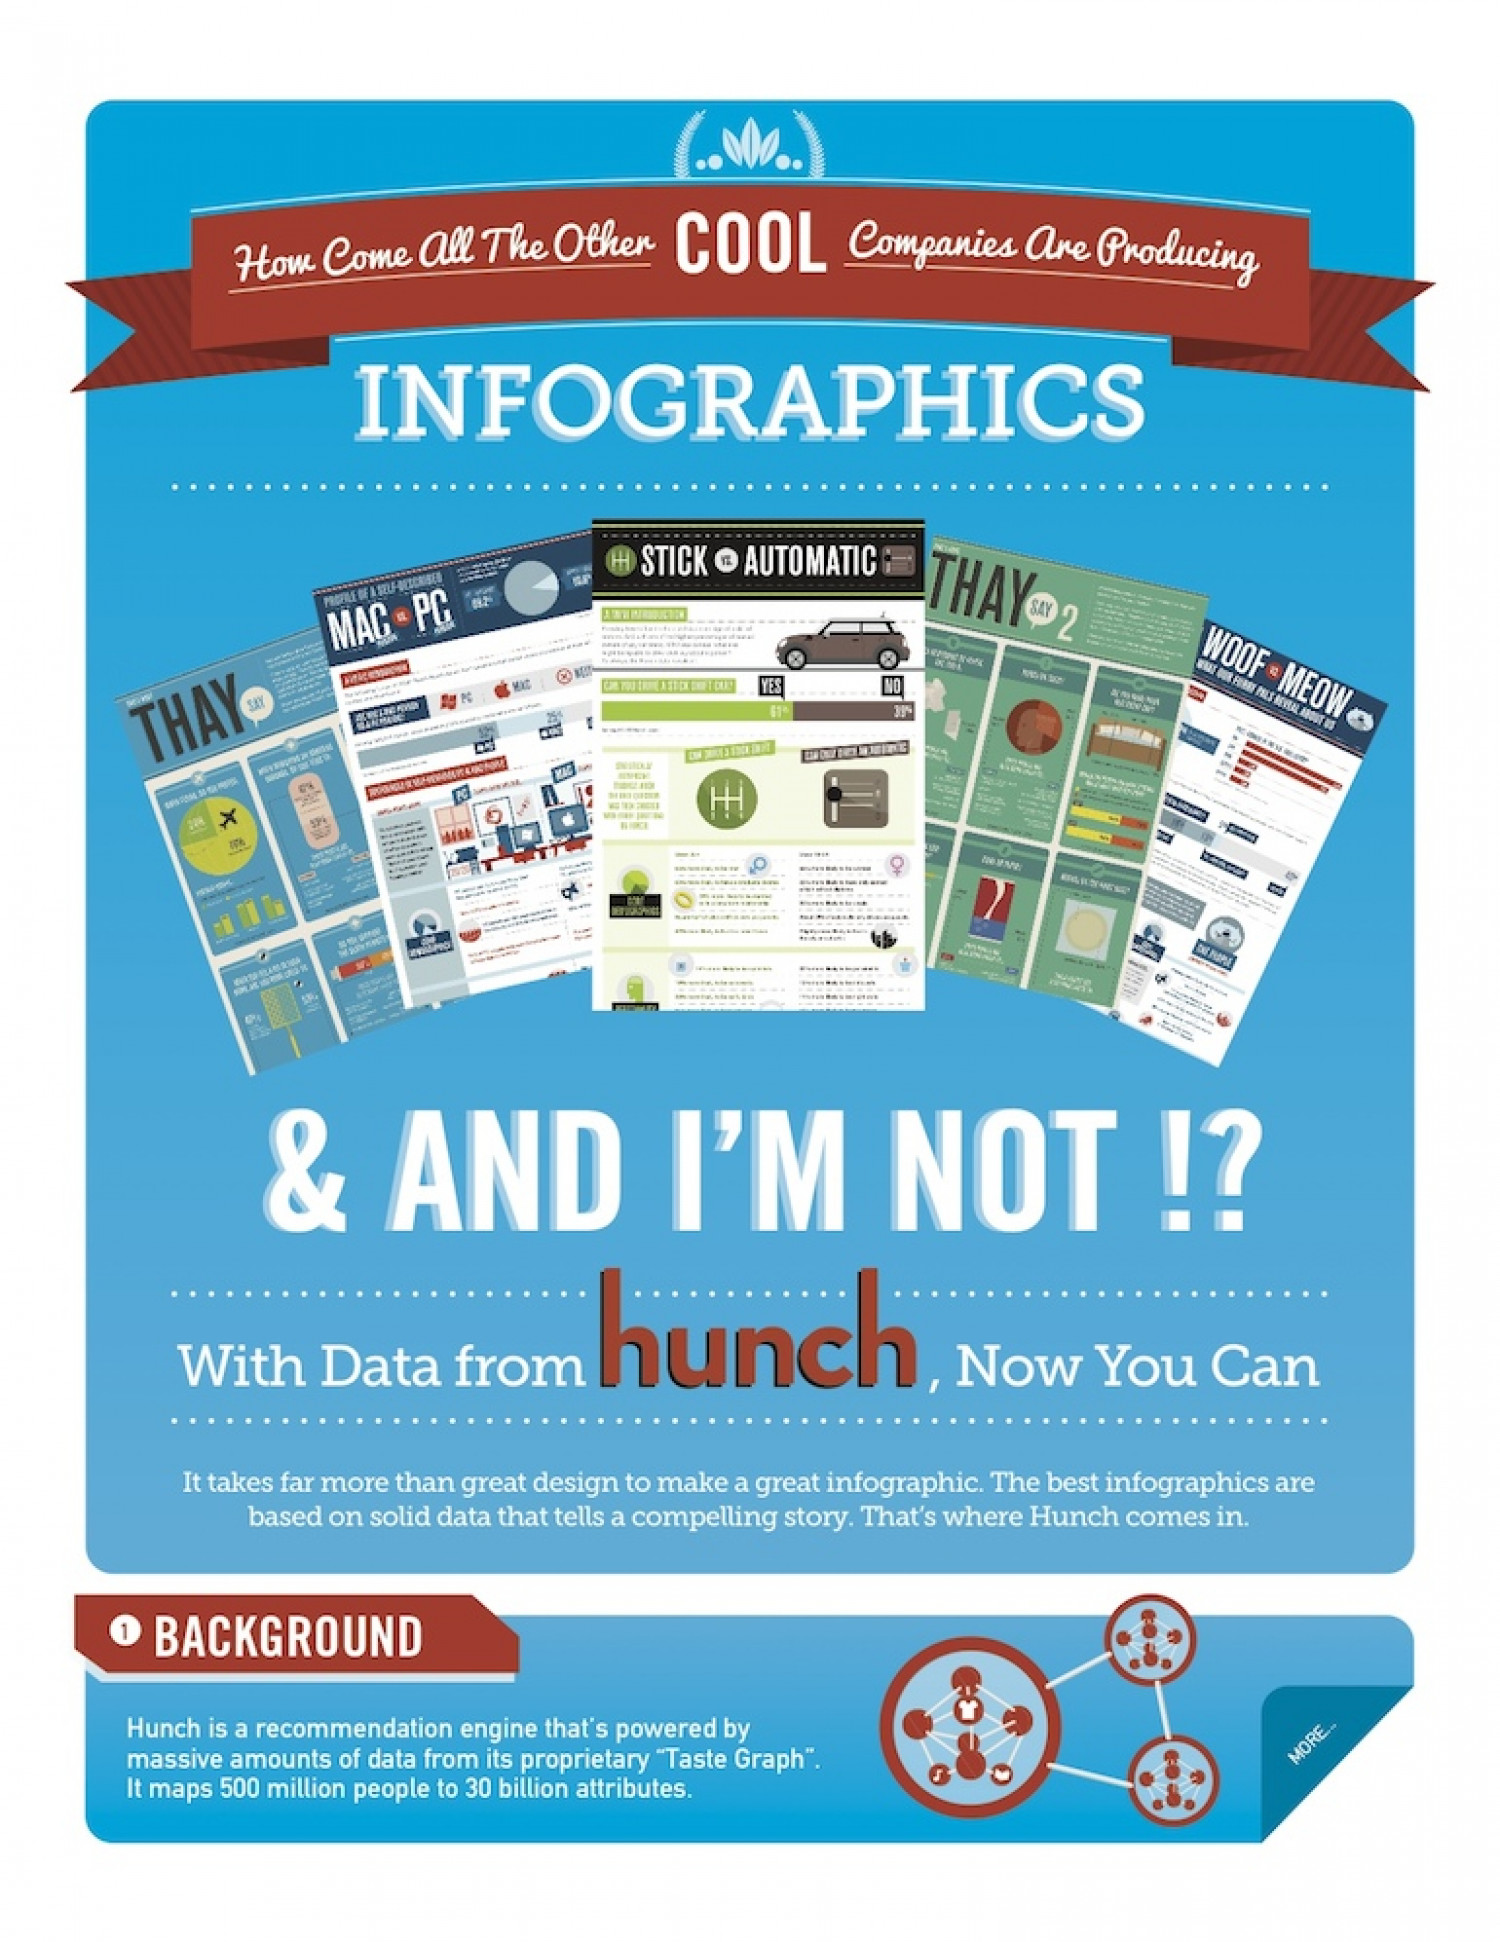 Co-sponsored Hunch infographics Infographic